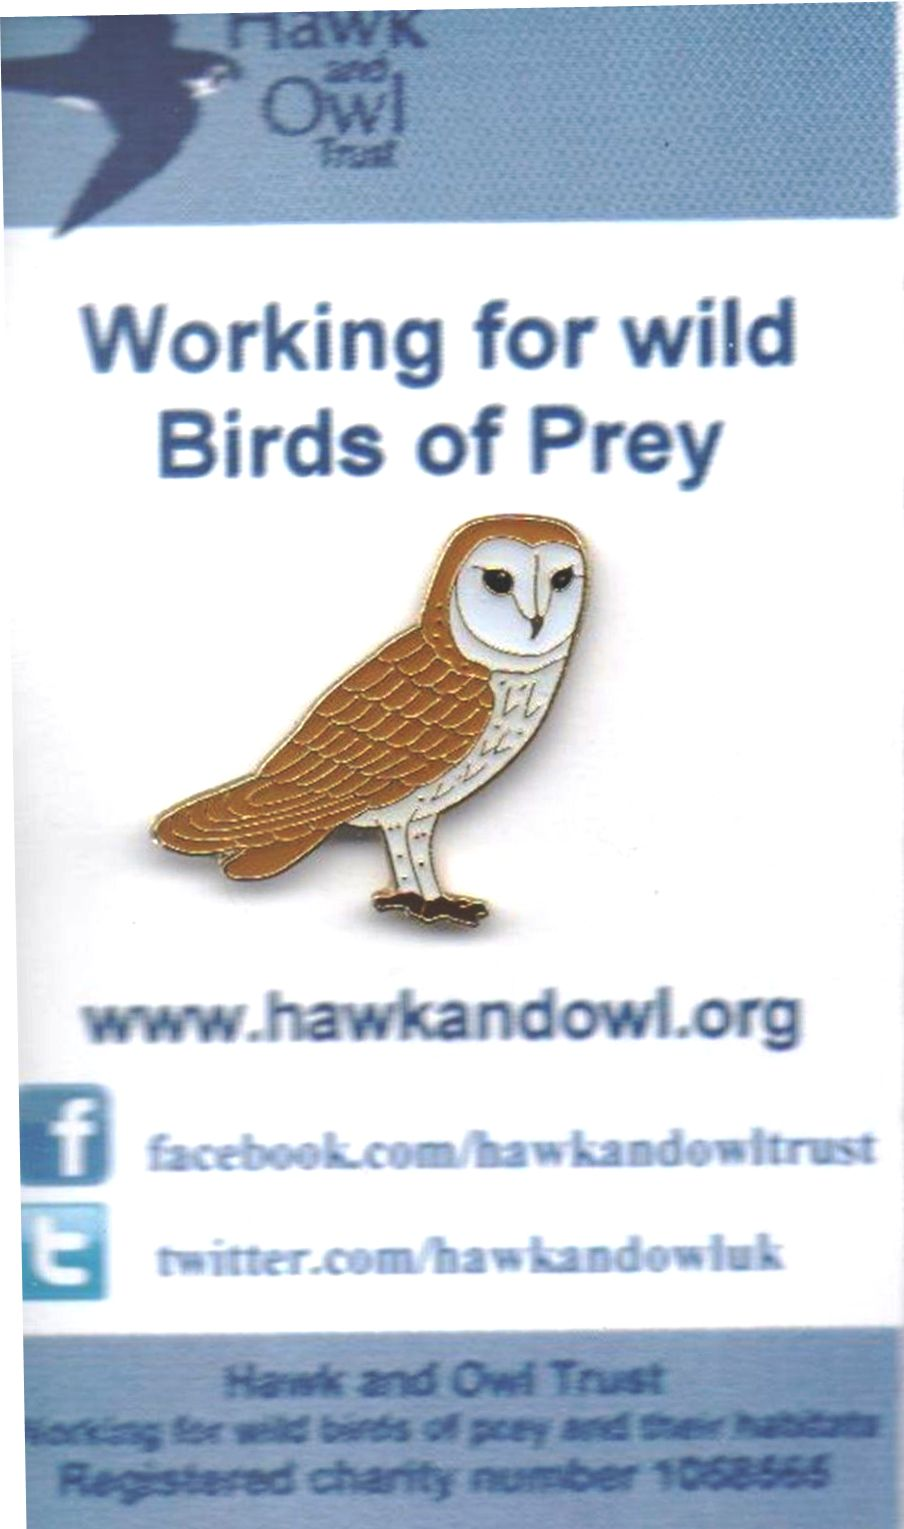 HAWK AND OWL TRUST